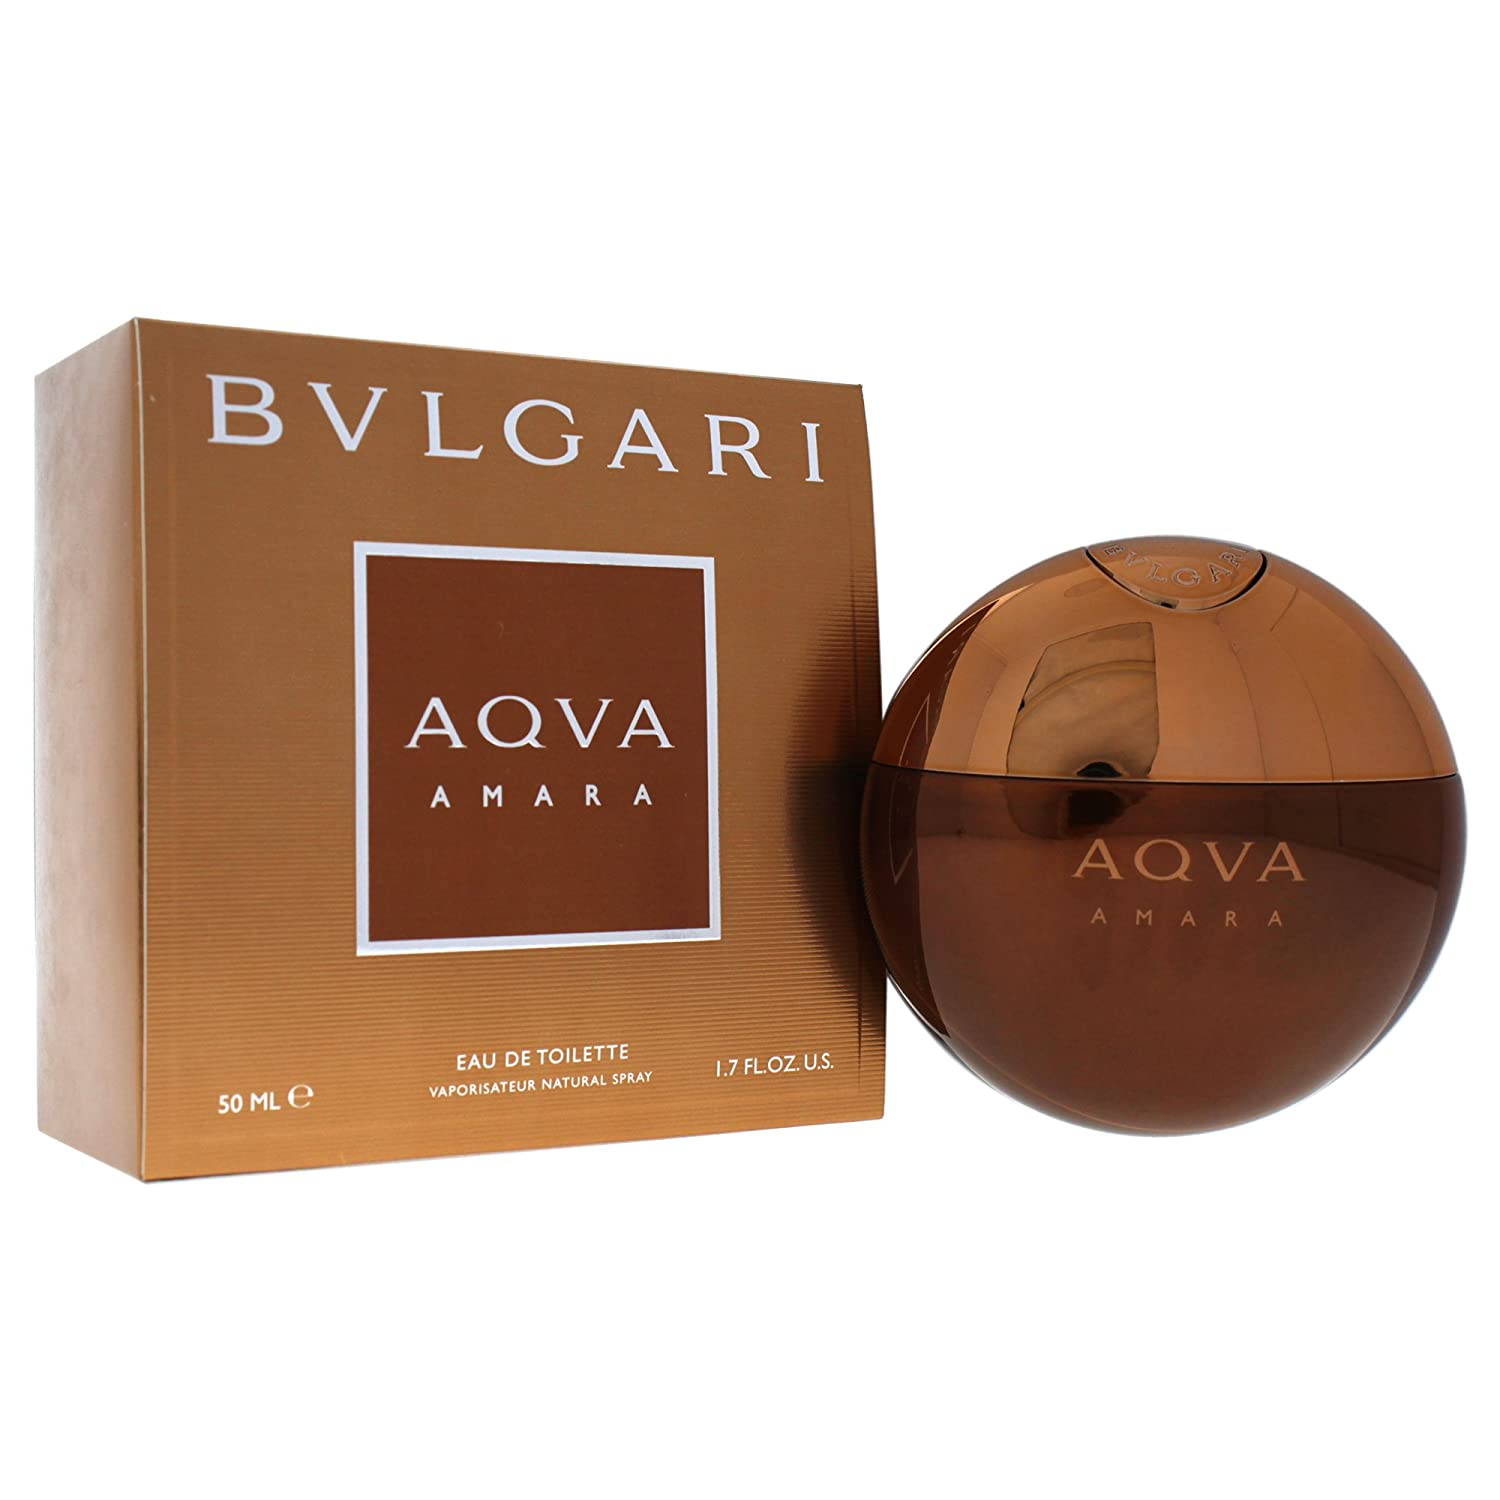 8dabf400282 Amazon.com   Bvlgari Aqva Amara Eau de Toilette Spray for Men